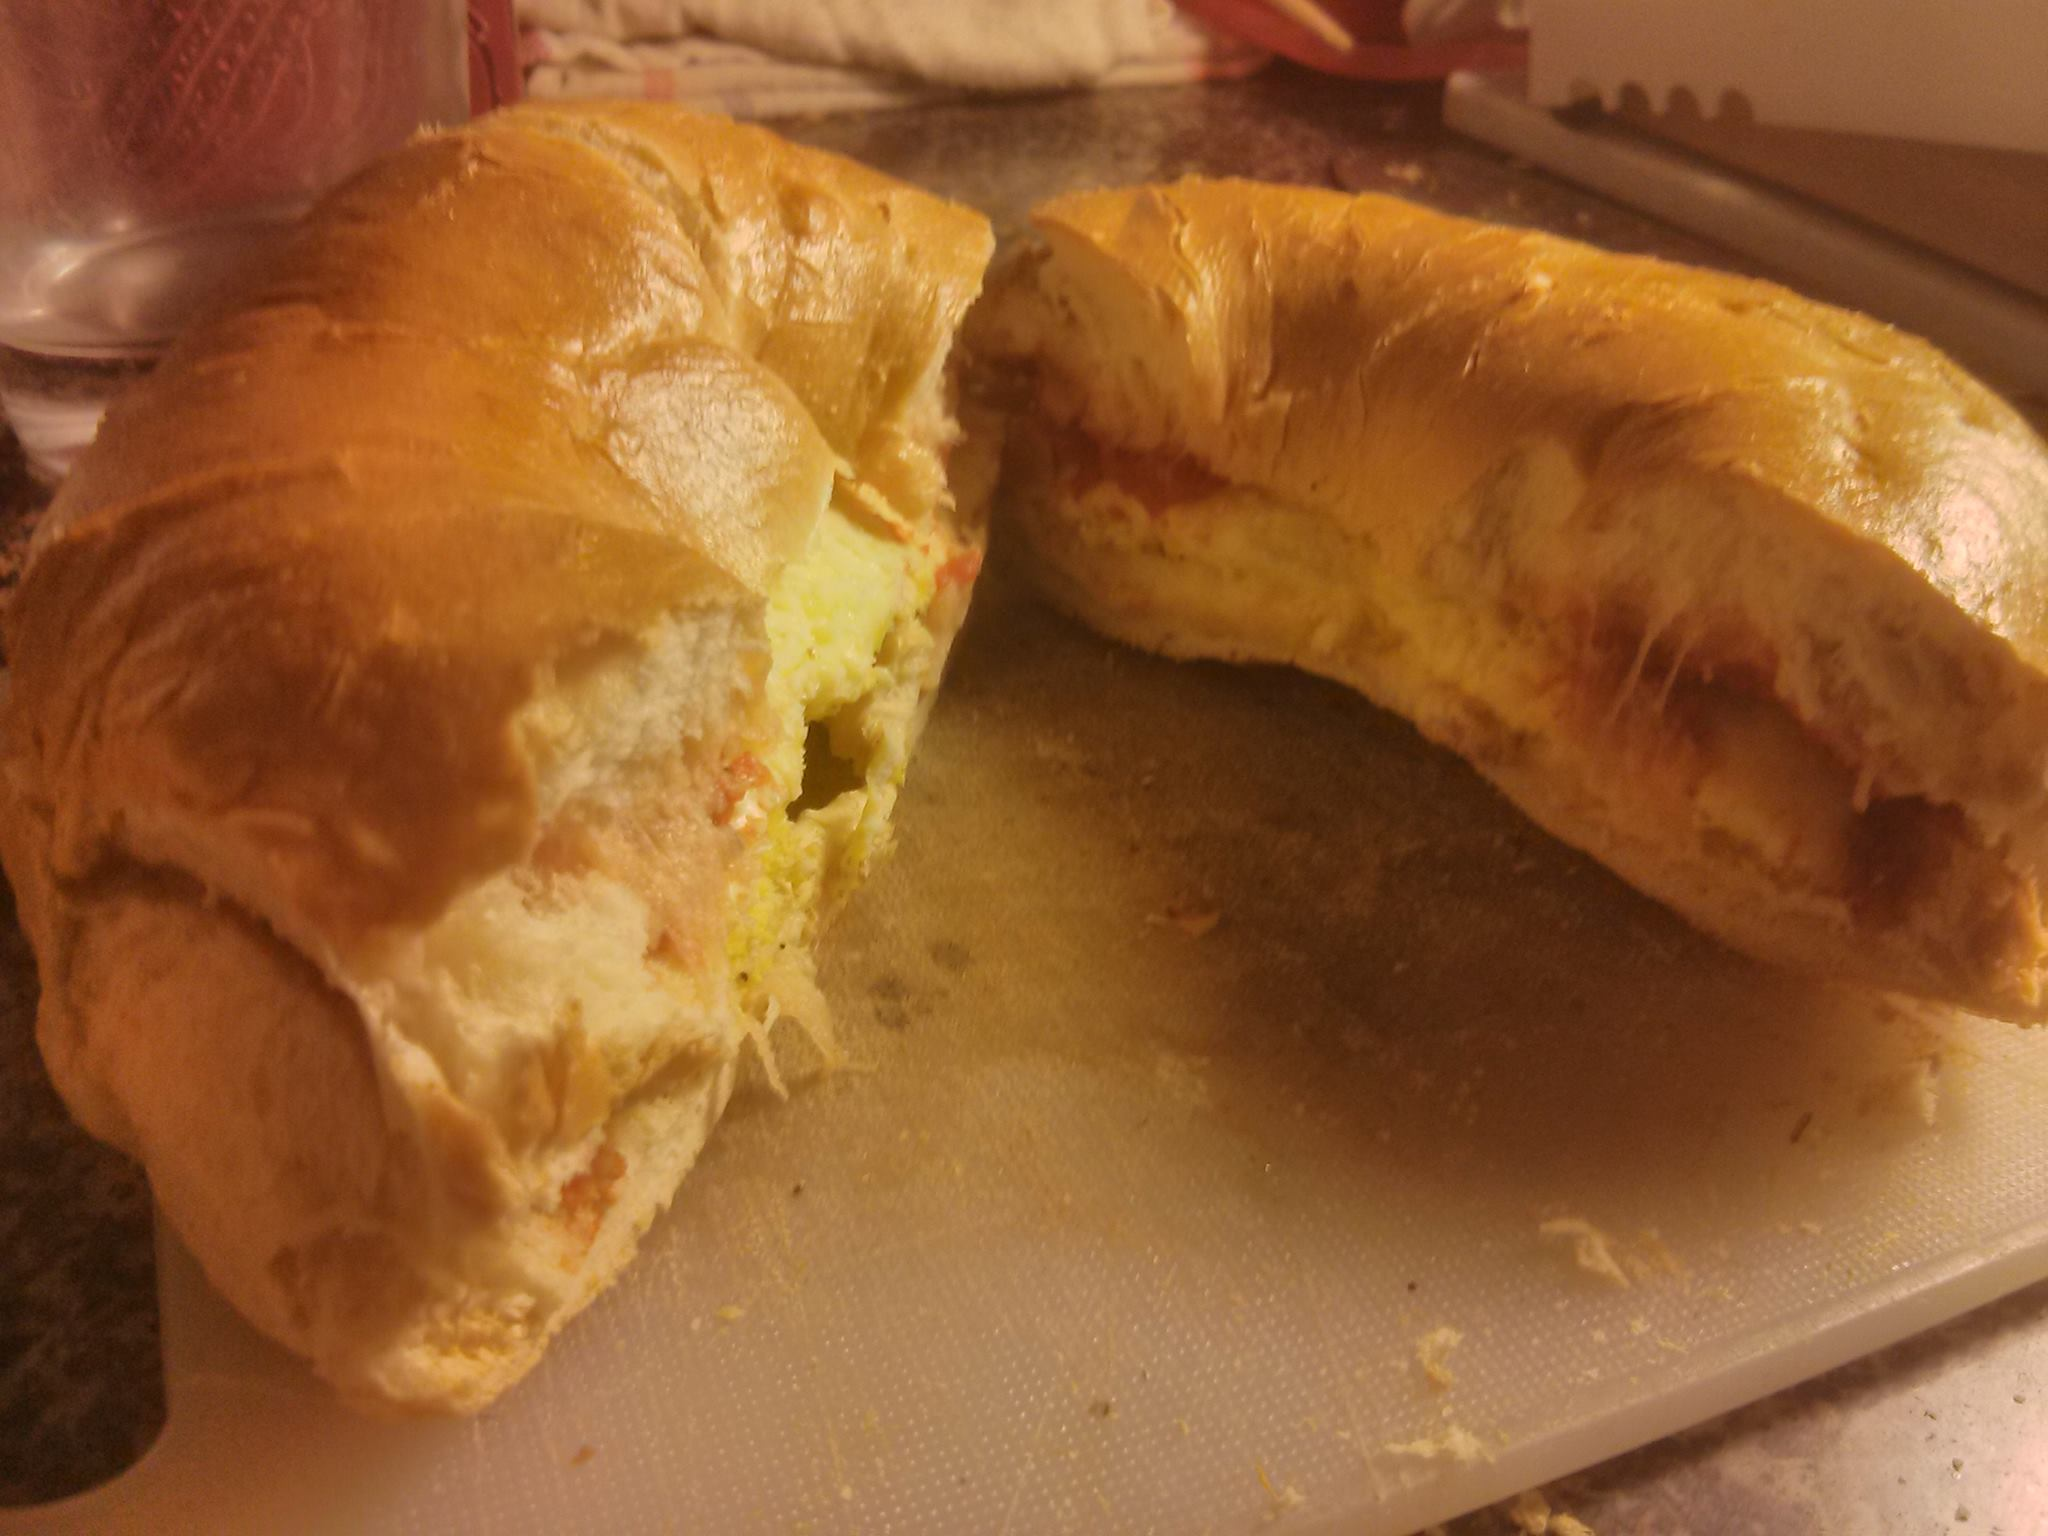 Masala Egg with Cheese on Toasted Bagel by John LeMasney via lemasney.com